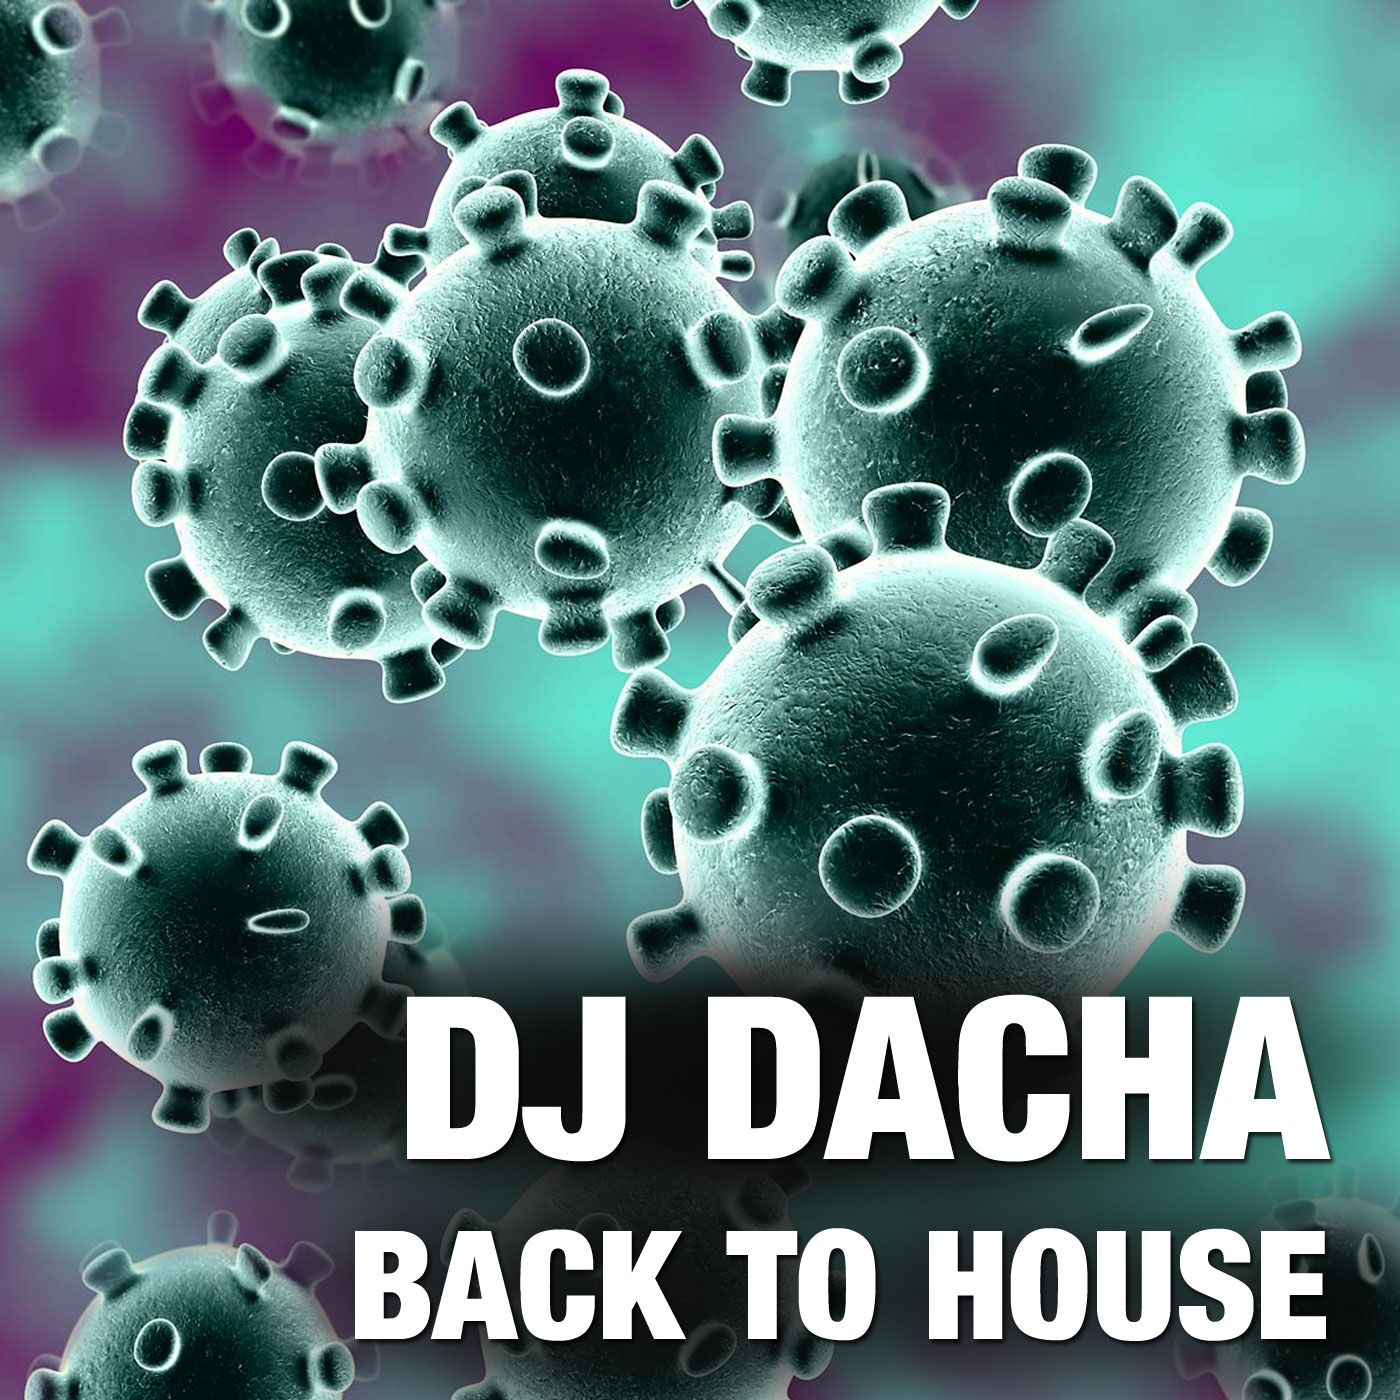 DJ Dacha 174 Back to House www.djdacha.net